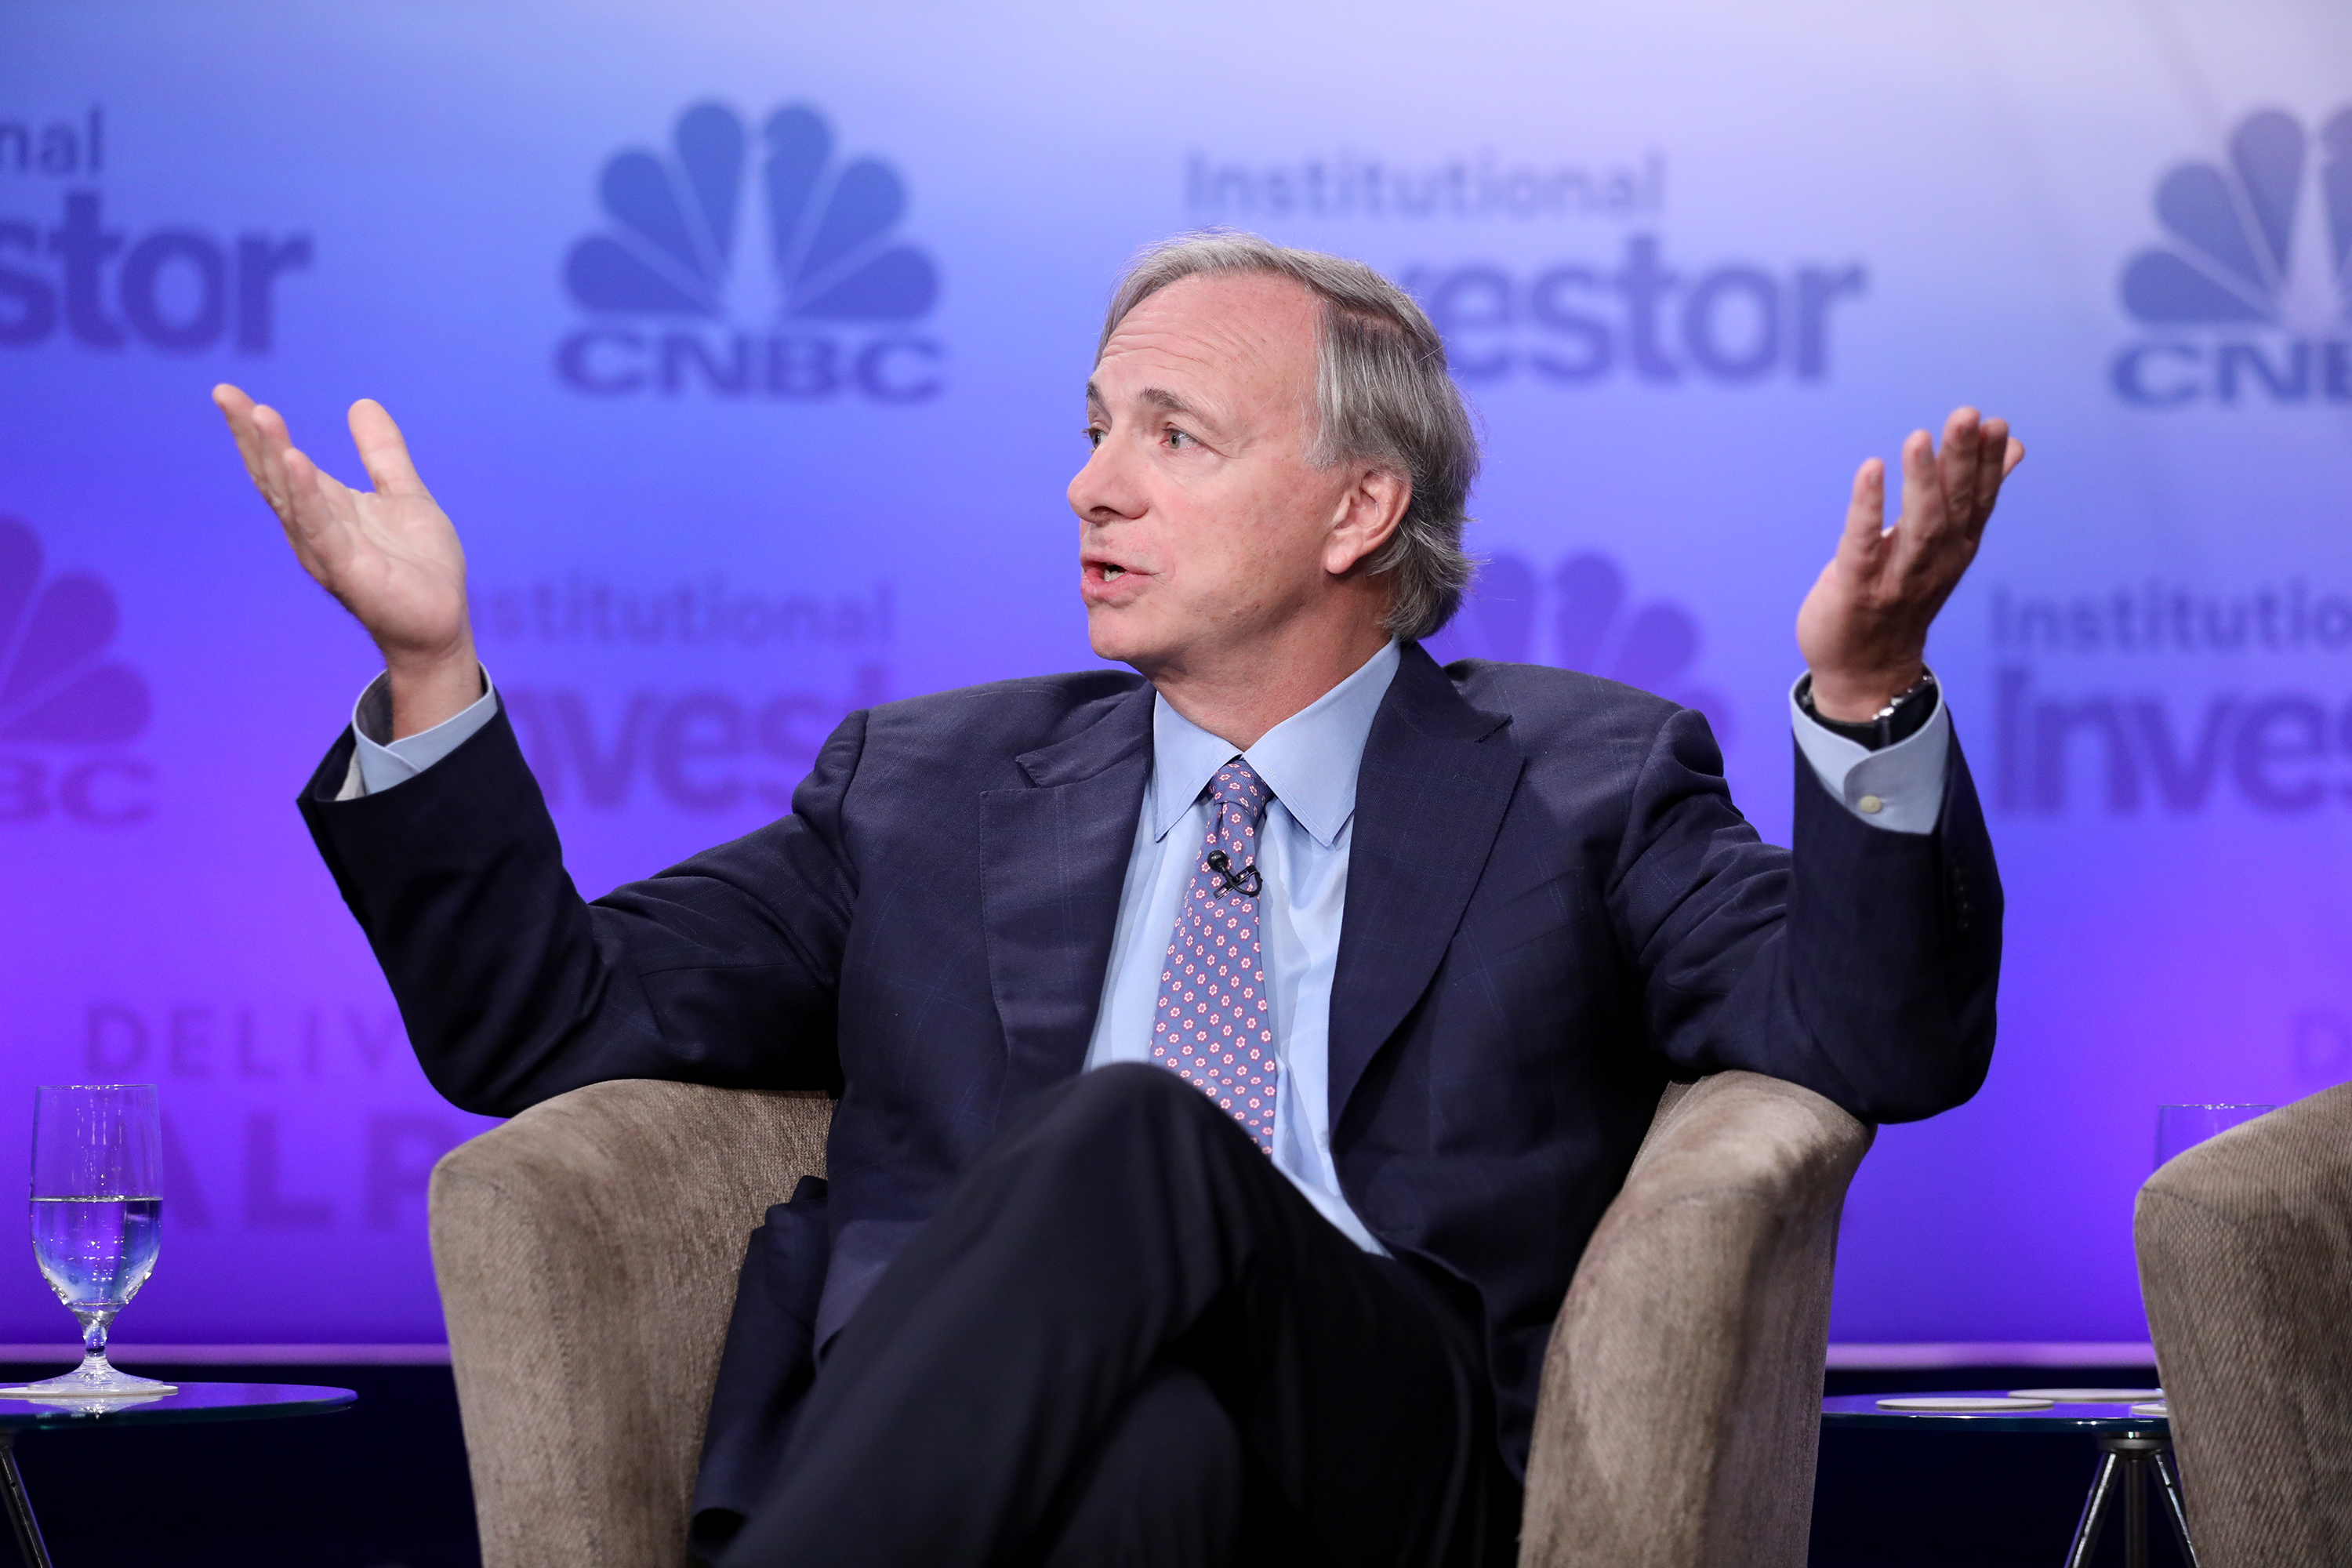 Ray Dalio, founder of Bridgewater Associates, at the 6th annual CNBC Institutional Investor Delivering Alpha Conference on Sept. 13, 2016 in New York.